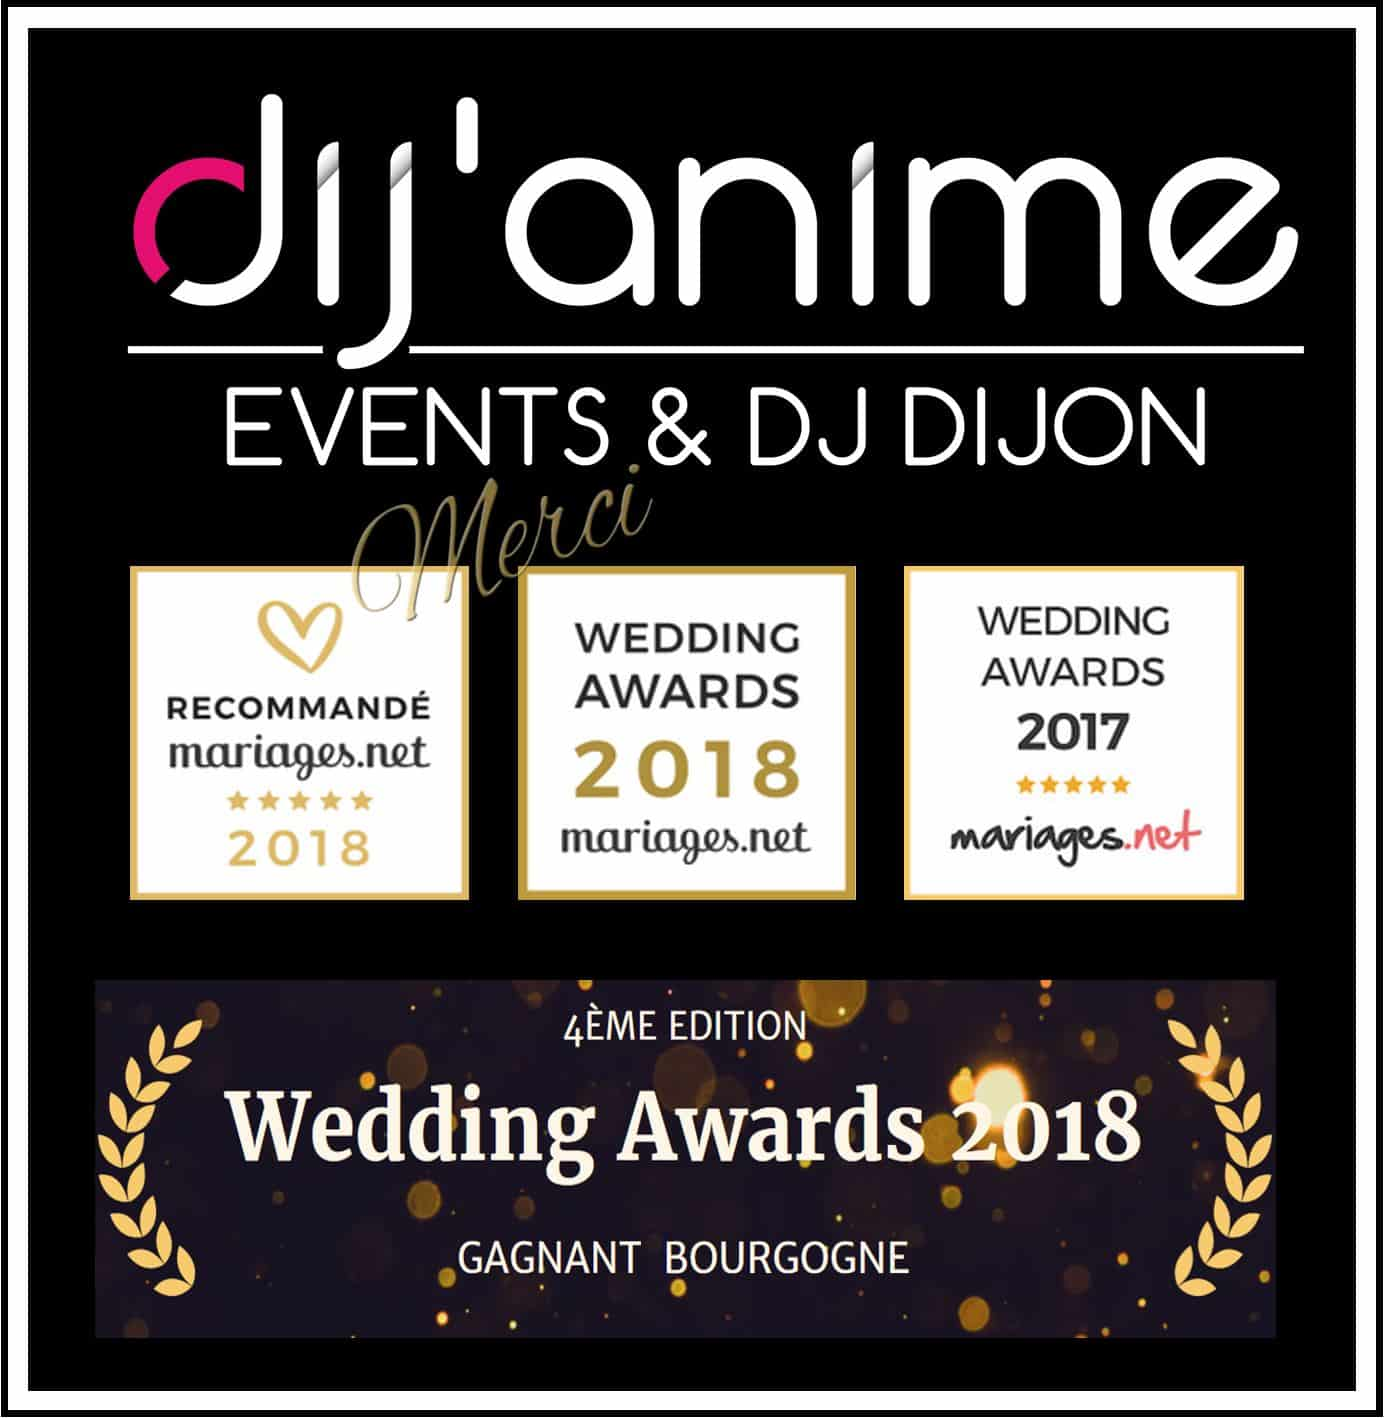 wedding awards 2017 avis et recommandations Dij'anime